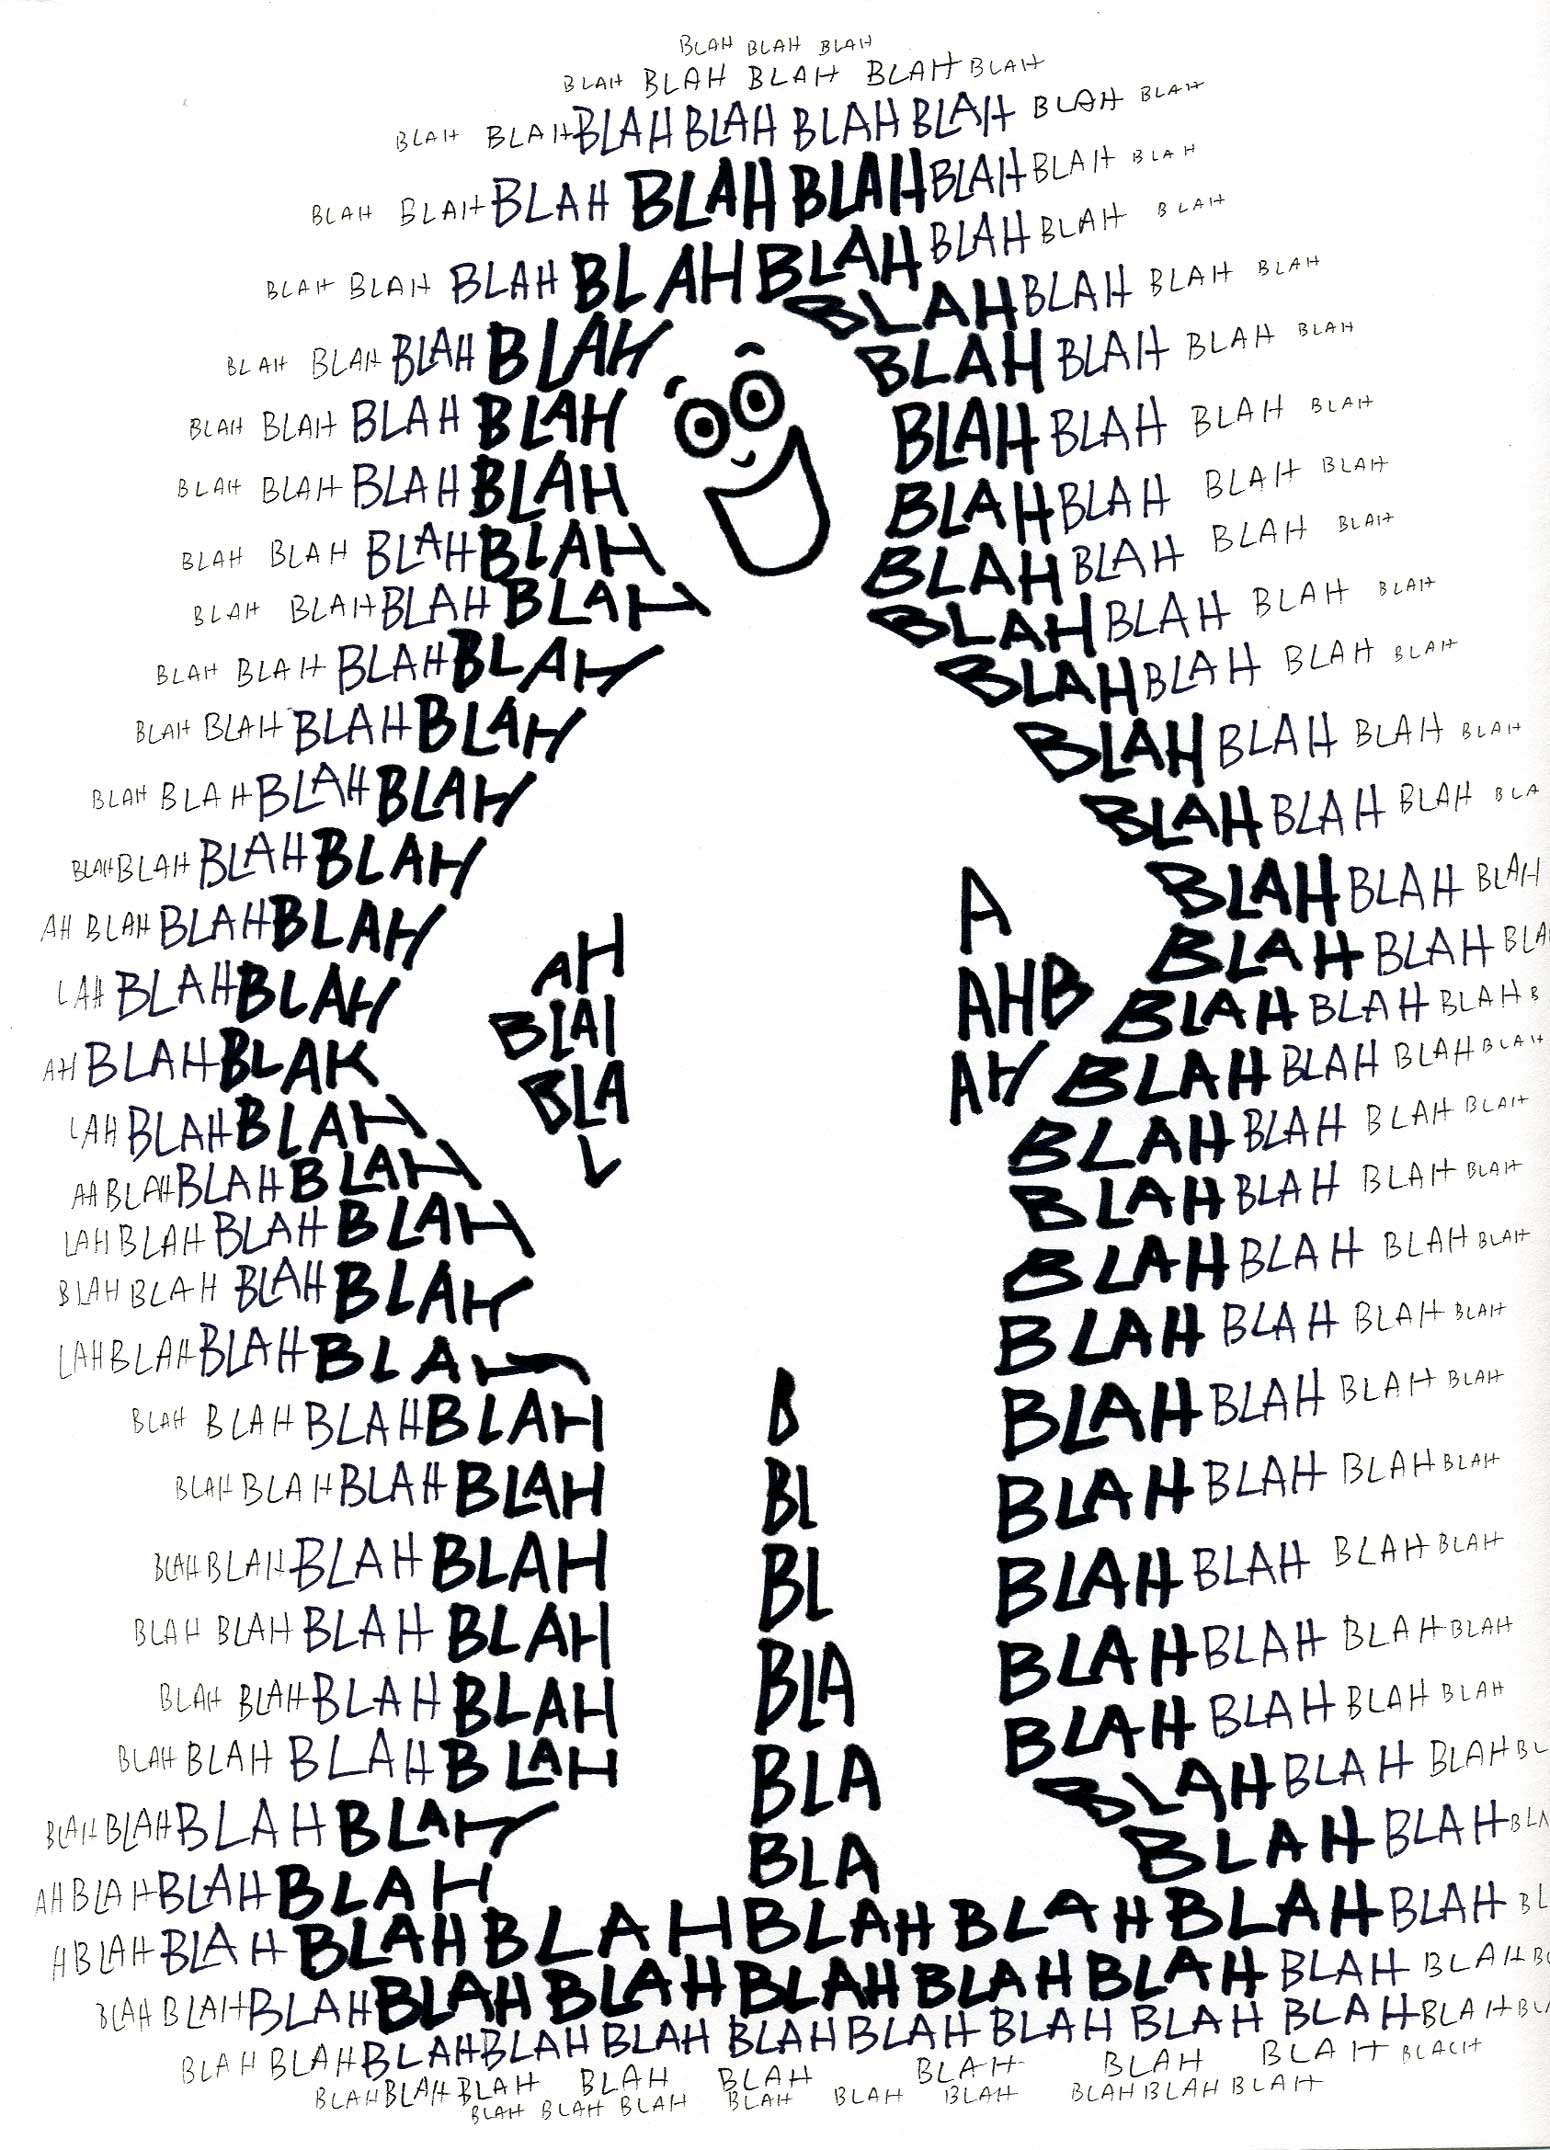 a man appears out of the words blah blah blah which are written lots of times in different black and white shadings. I love the smile on the man's face.